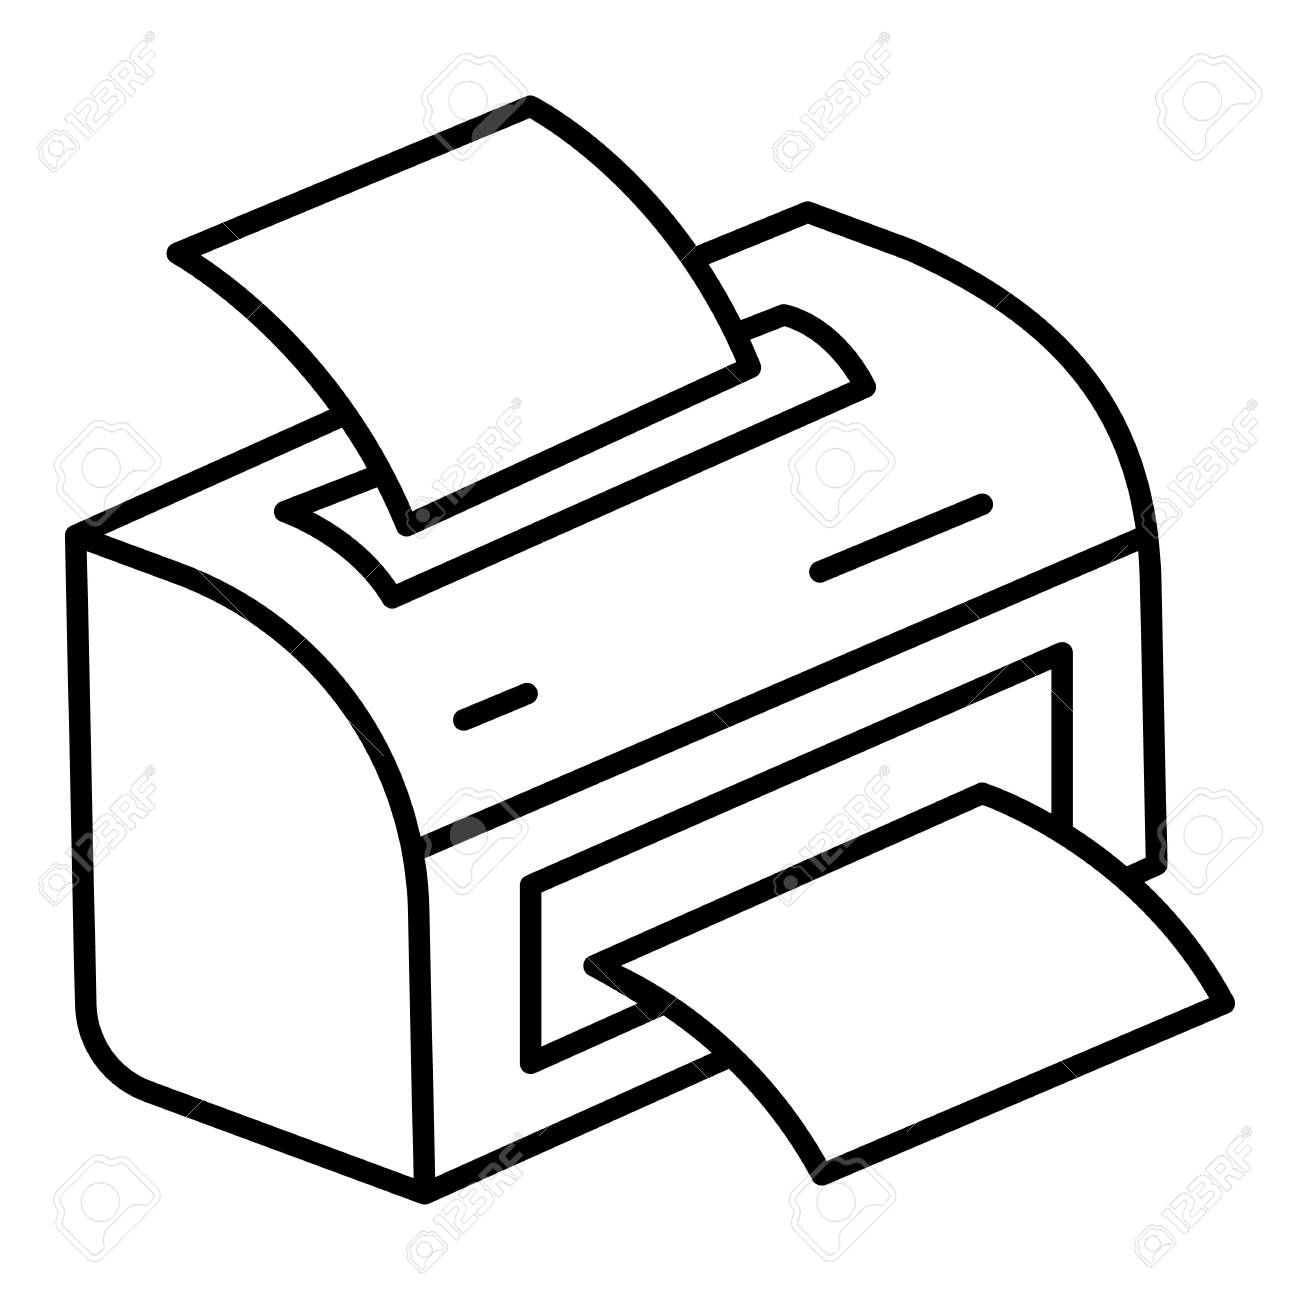 printer icon outline printer vector icon for web design isolated royalty free cliparts vectors and stock illustration image 126306705 printer icon outline printer vector icon for web design isolated